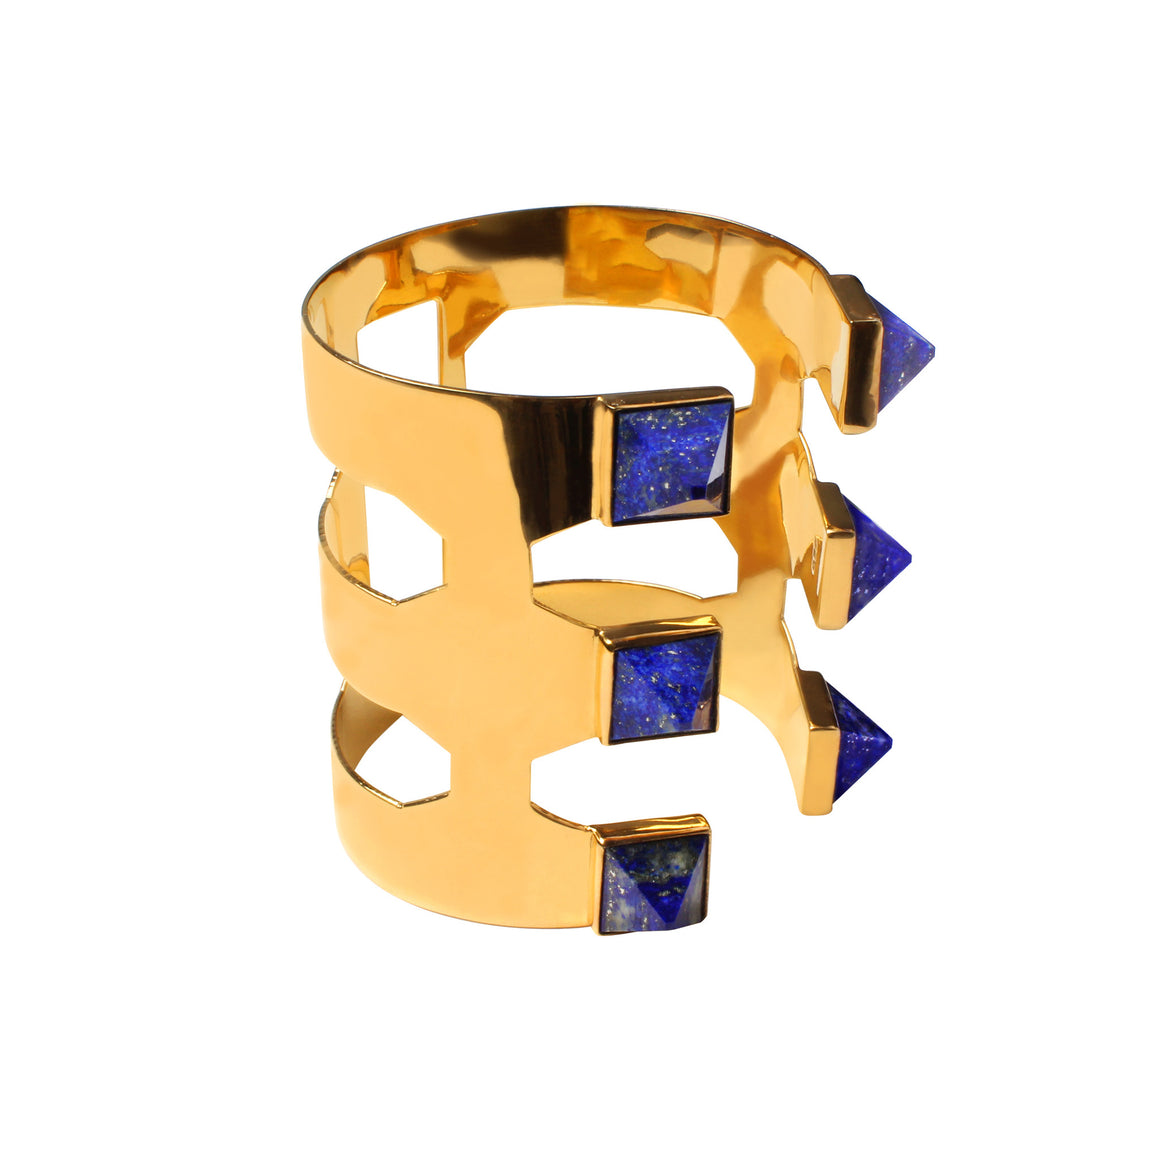 PYRAMID LAPIS CUFF IN 24K GOLD - ADJUSTABLE SIZING